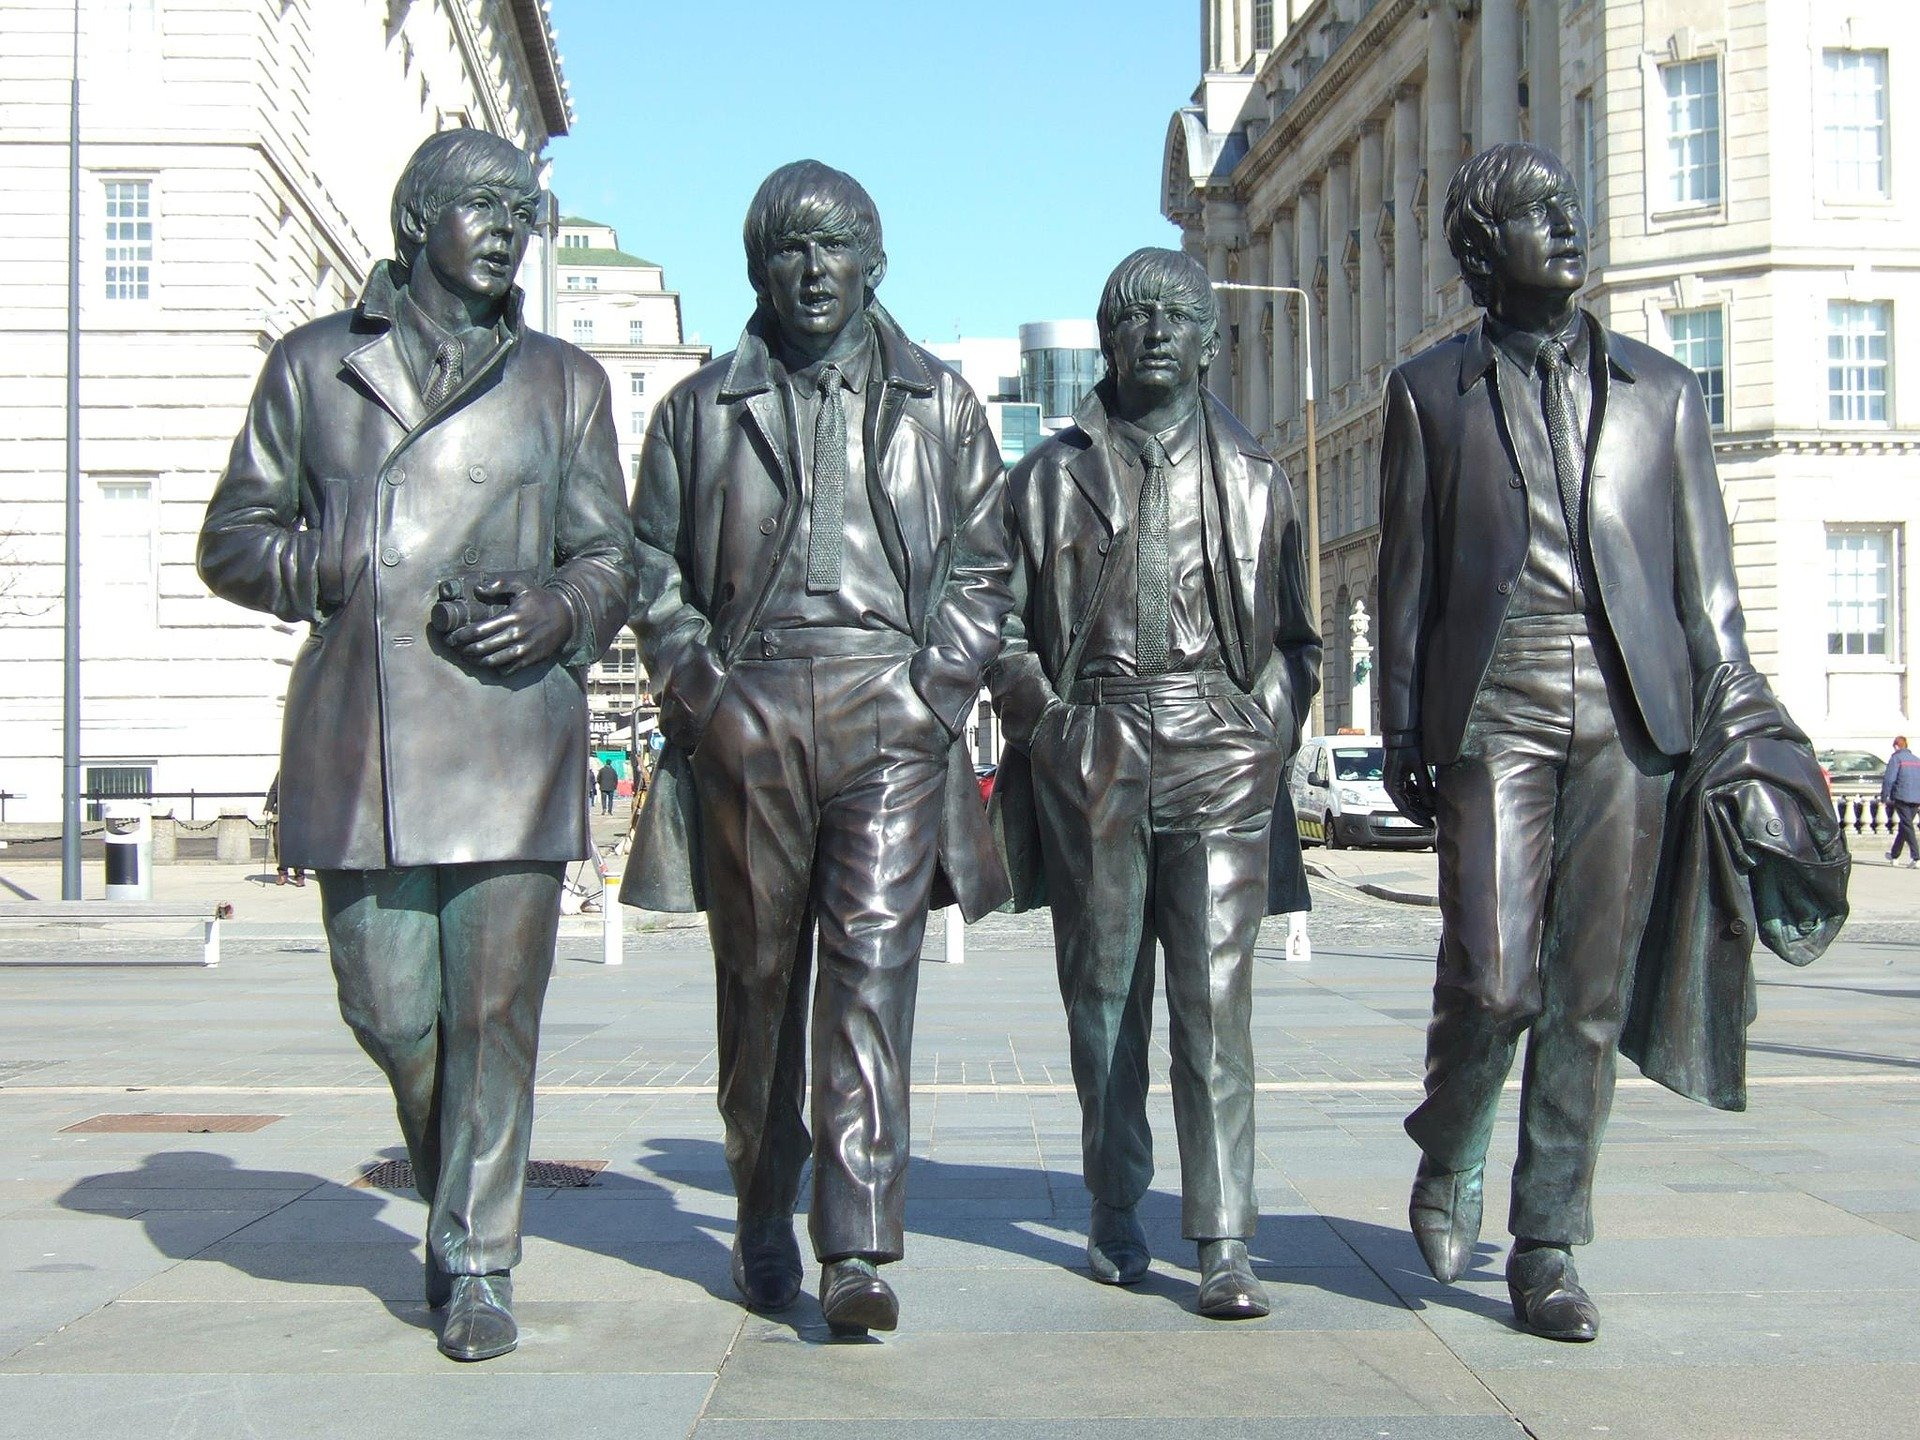 Beatles sculpture in Liverpool